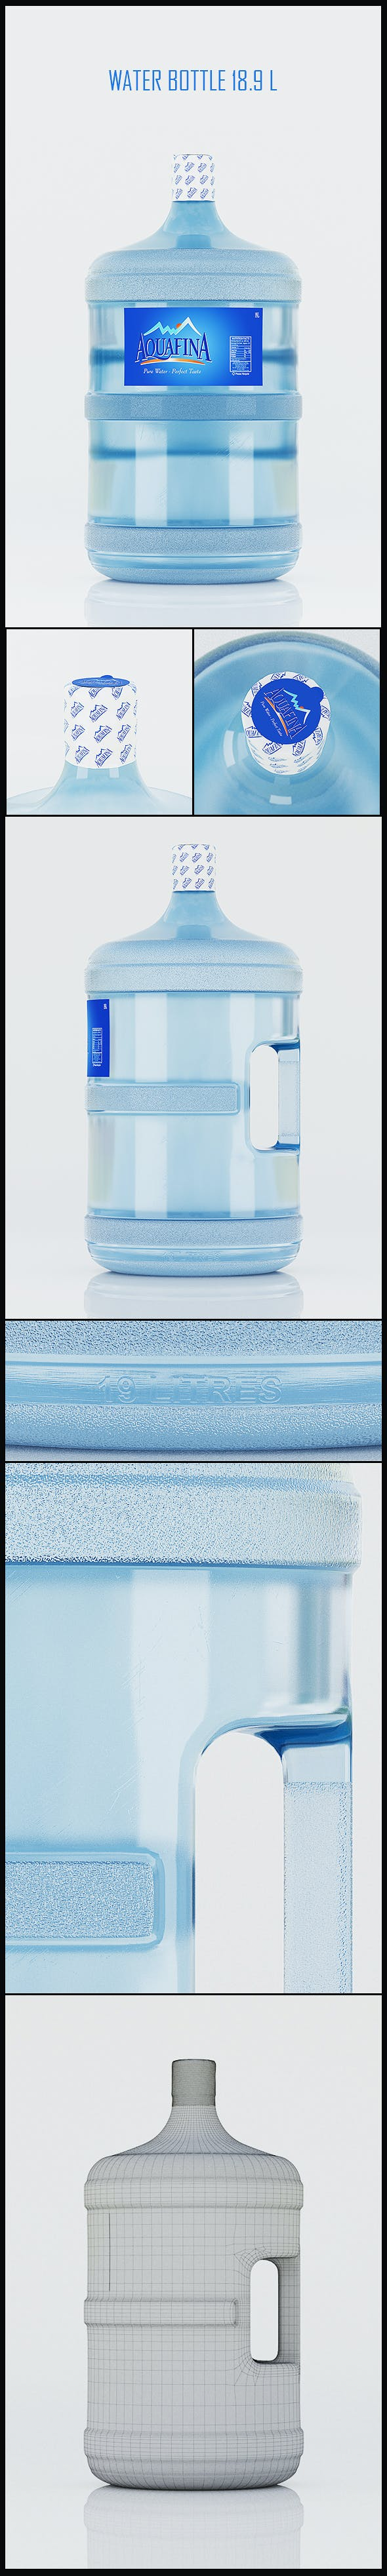 18.9 LITTRE WATER BOTTLE - 3DOcean Item for Sale